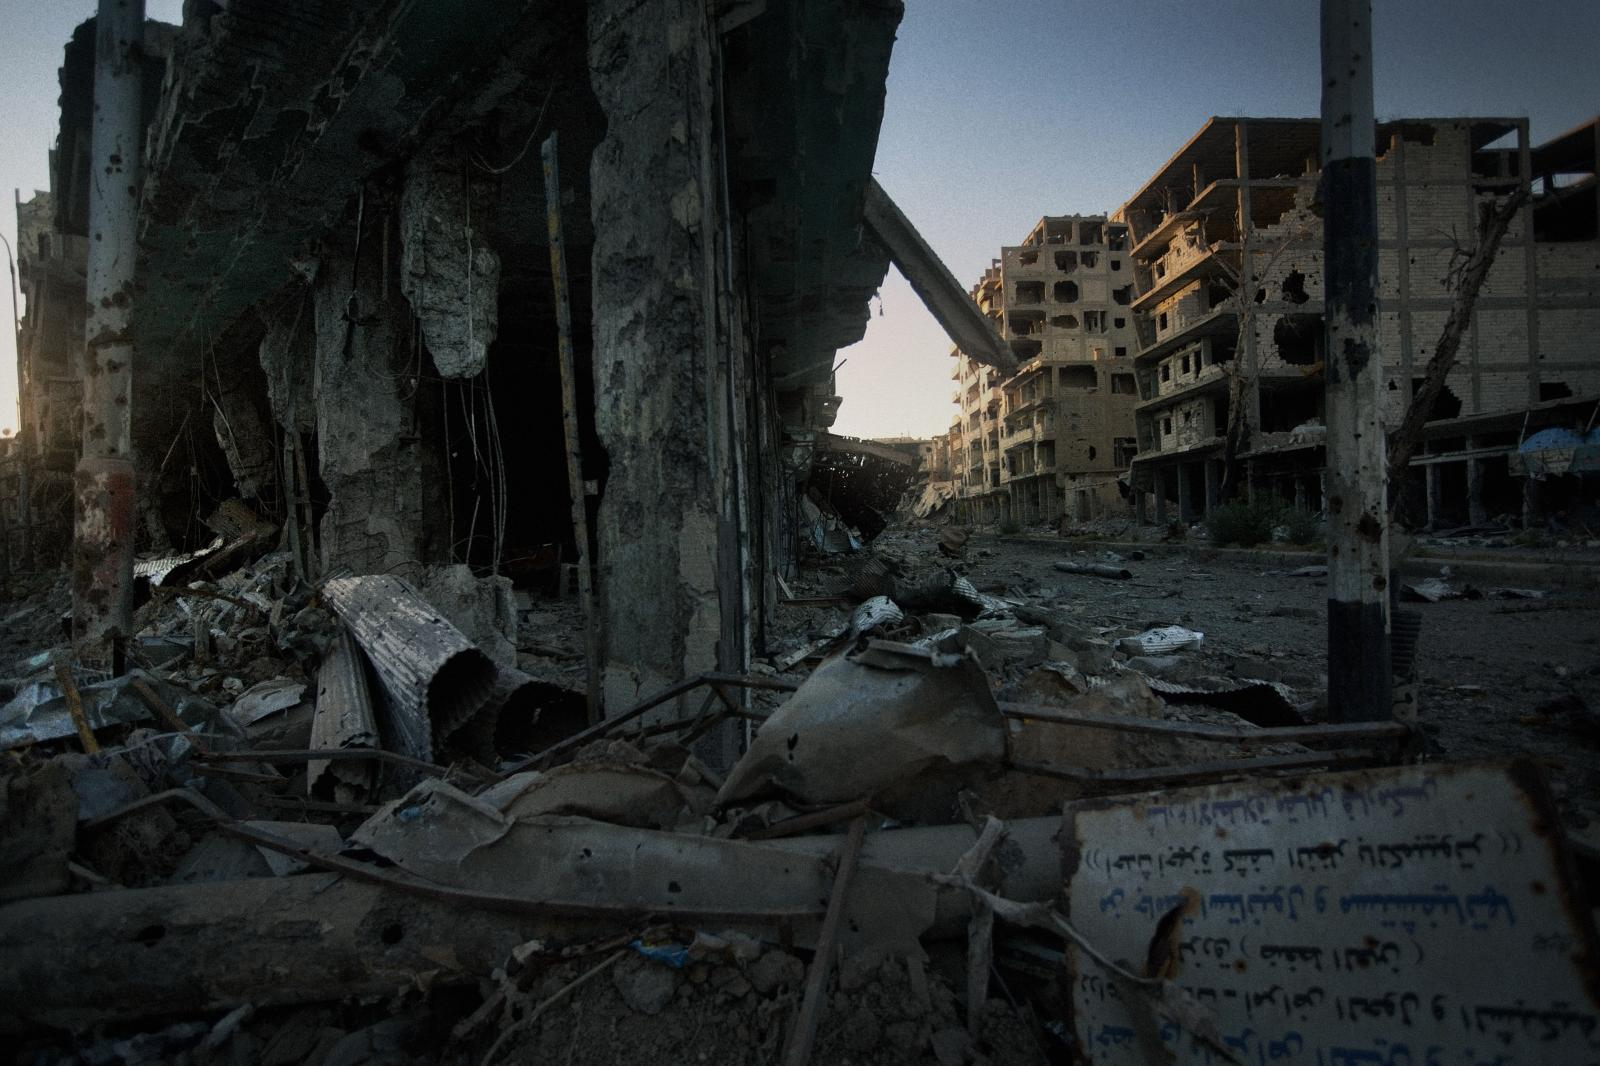 One of the main streets in Deir ez-Zor, a city which was under constant shelling by Assad's troops.Five seconds after taking this picture, a projectile exploded in this exact place (Syria, 2013)